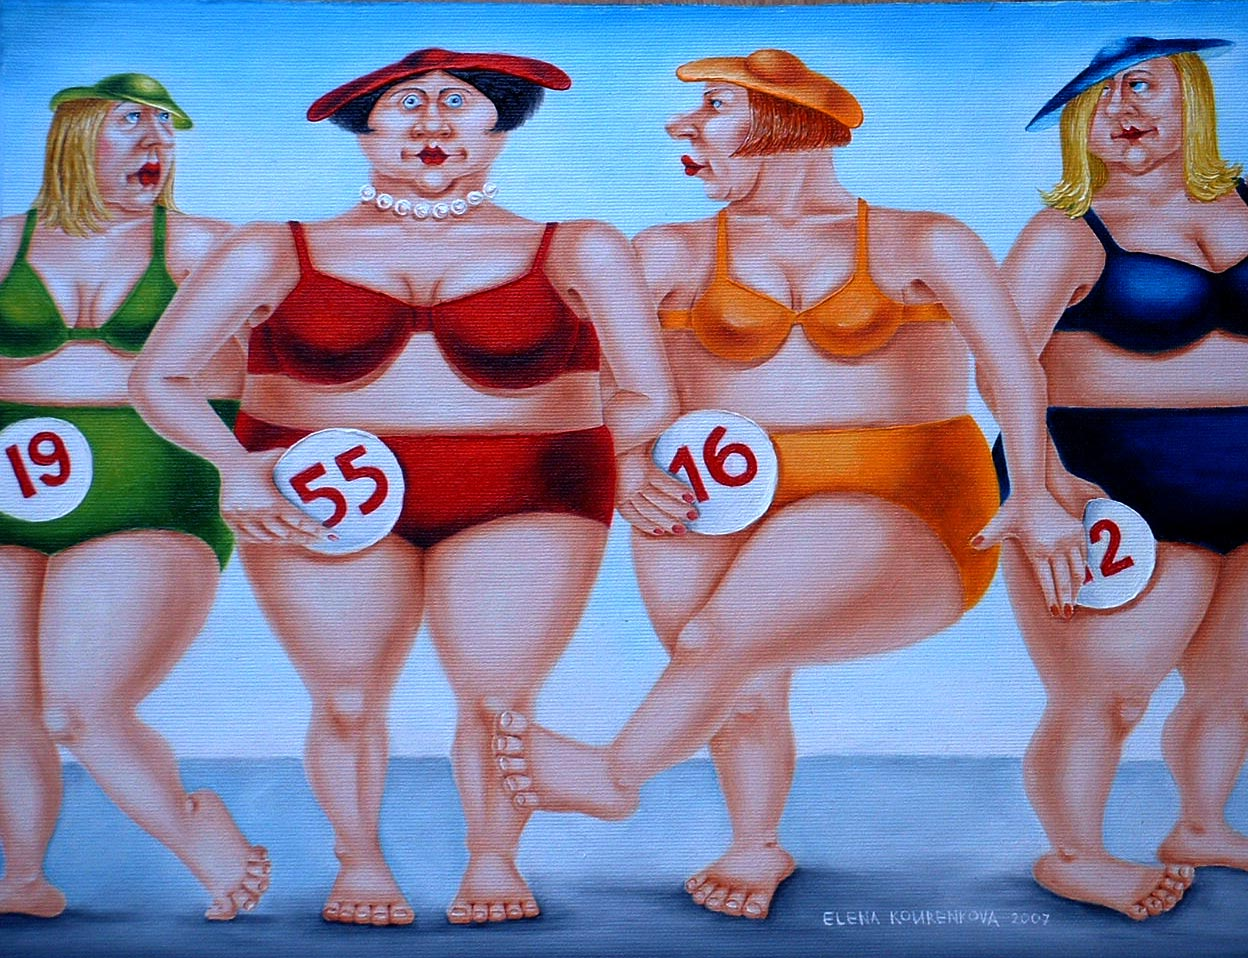 quirky humorous figurative art image